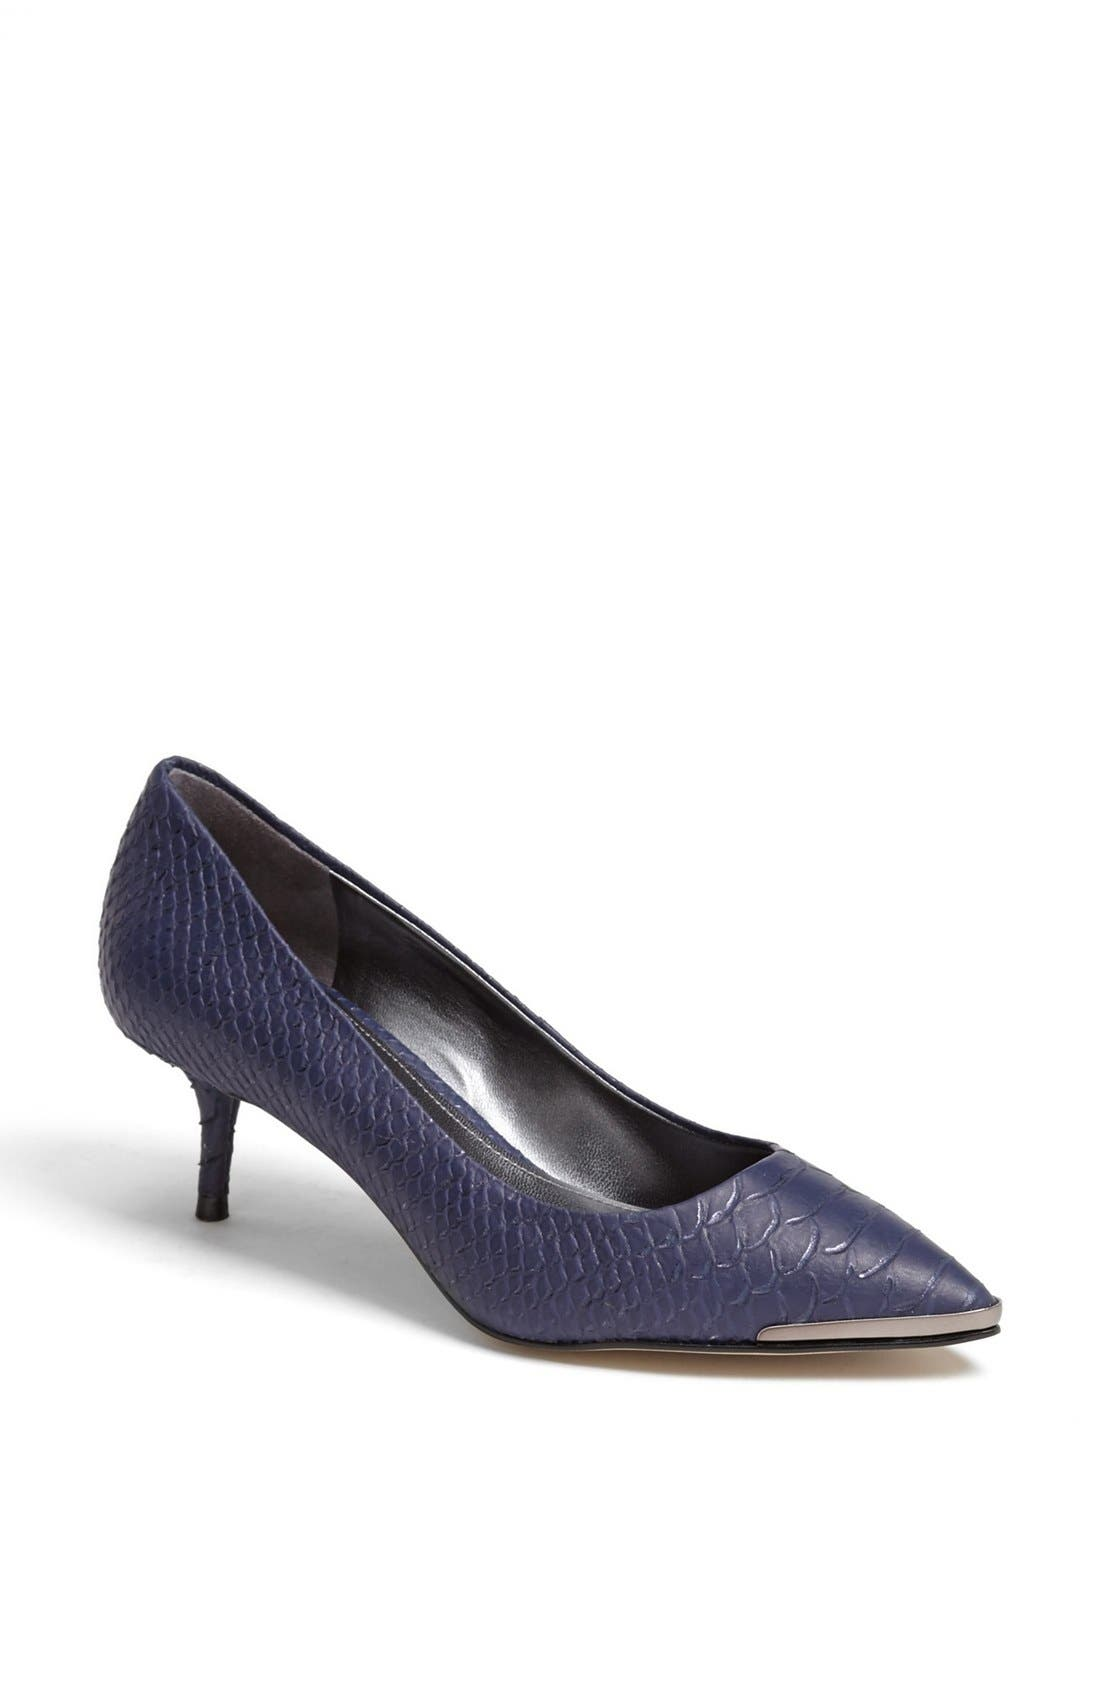 Alternate Image 1 Selected - Enzo Angiolini 'Graysn' Embossed Leather Pump